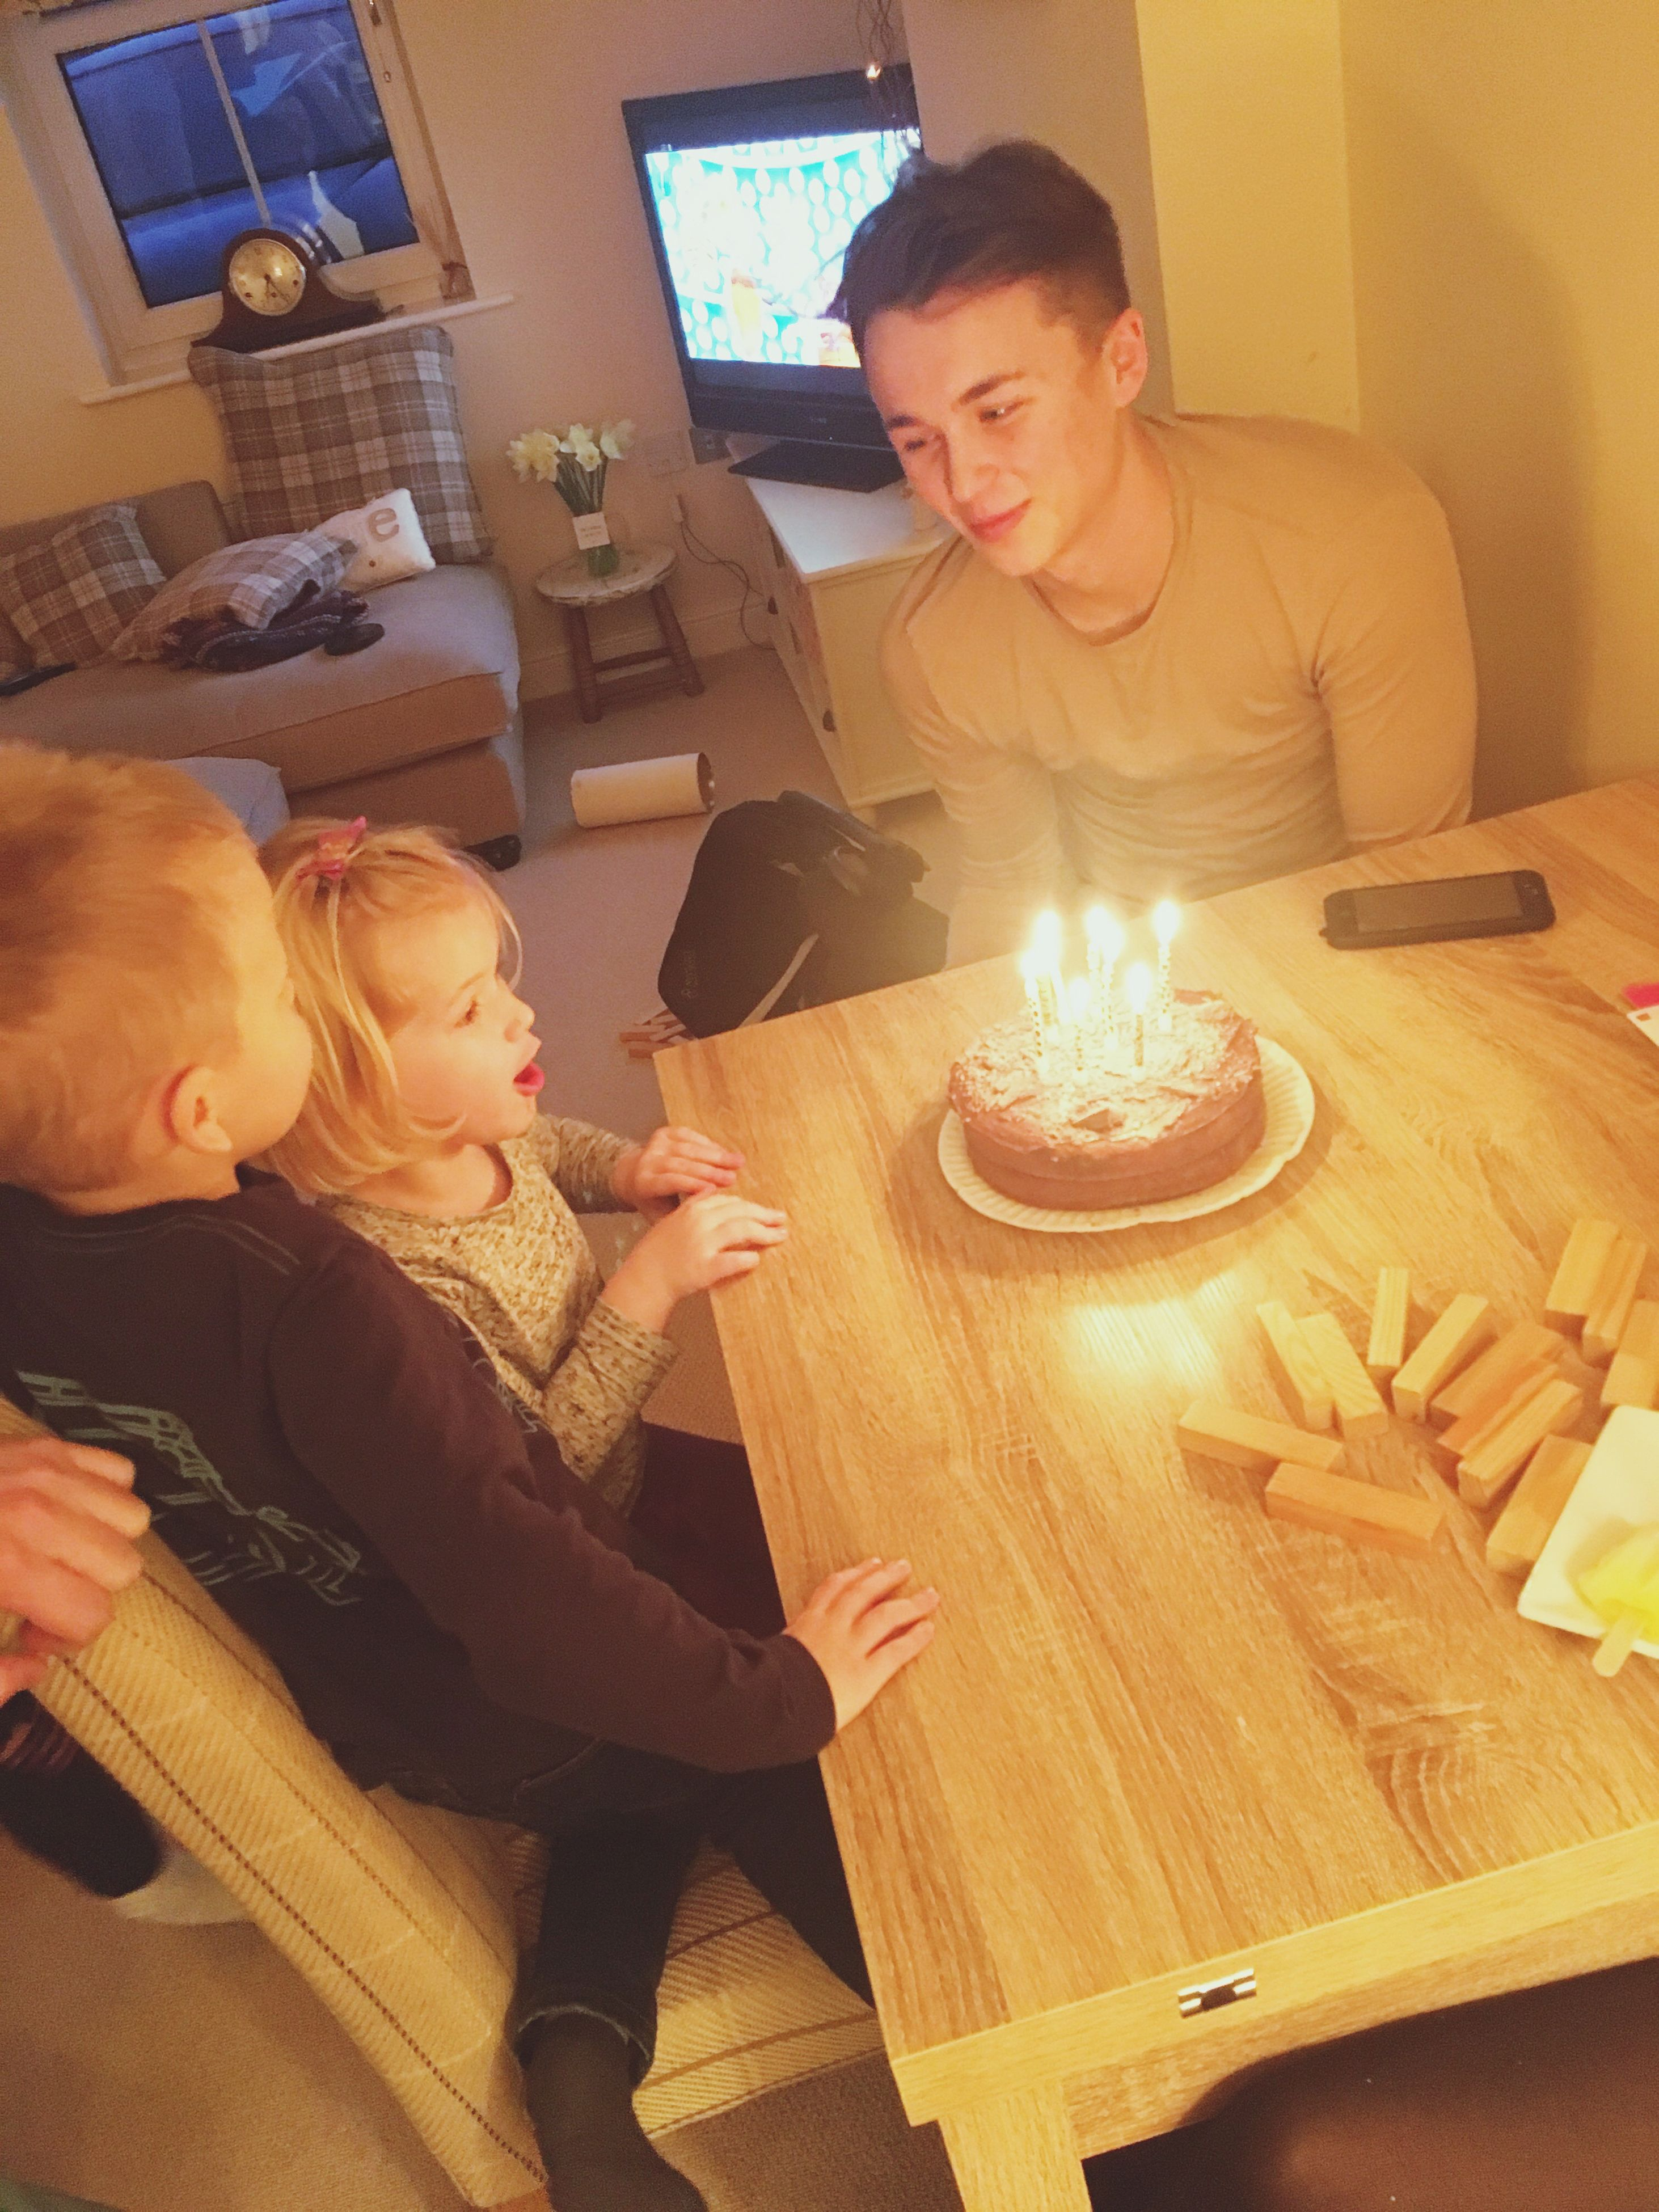 candle, indoors, women, celebration, lifestyles, burning, flame, two people, men, togetherness, sitting, adult, birthday cake, smiling, party - social event, birthday candles, happiness, home interior, young women, people, young adult, heat - temperature, cheerful, gift, adults only